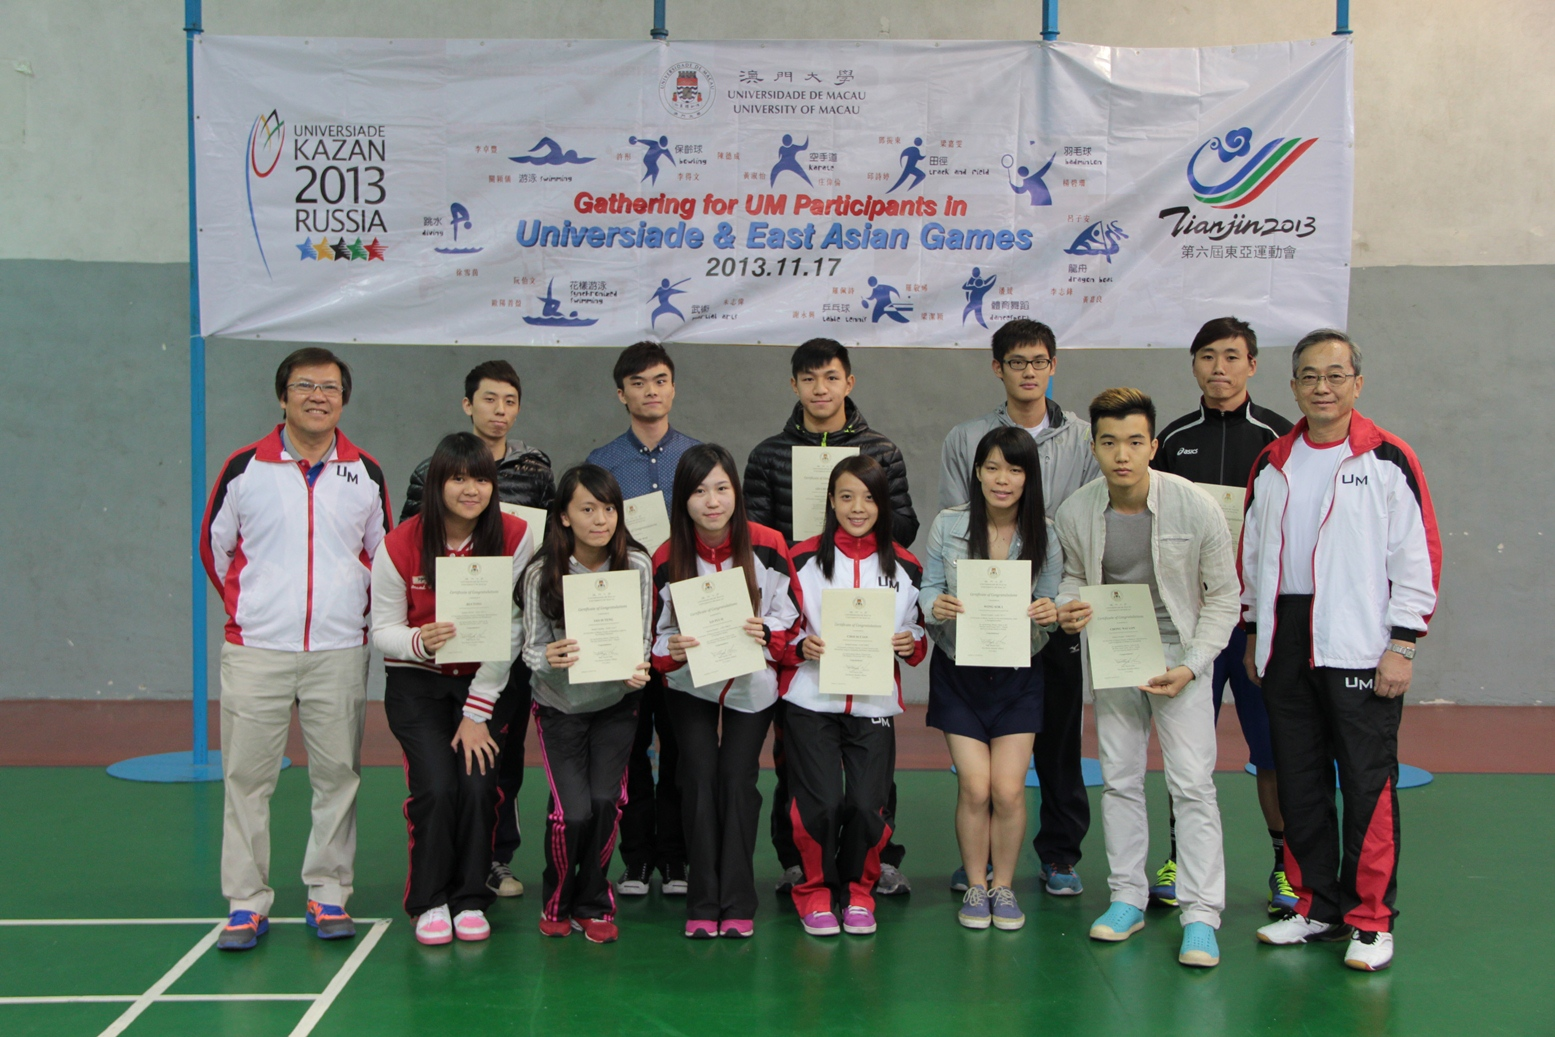 Haydn (1st from the right) encourages students to participate in sporting events.